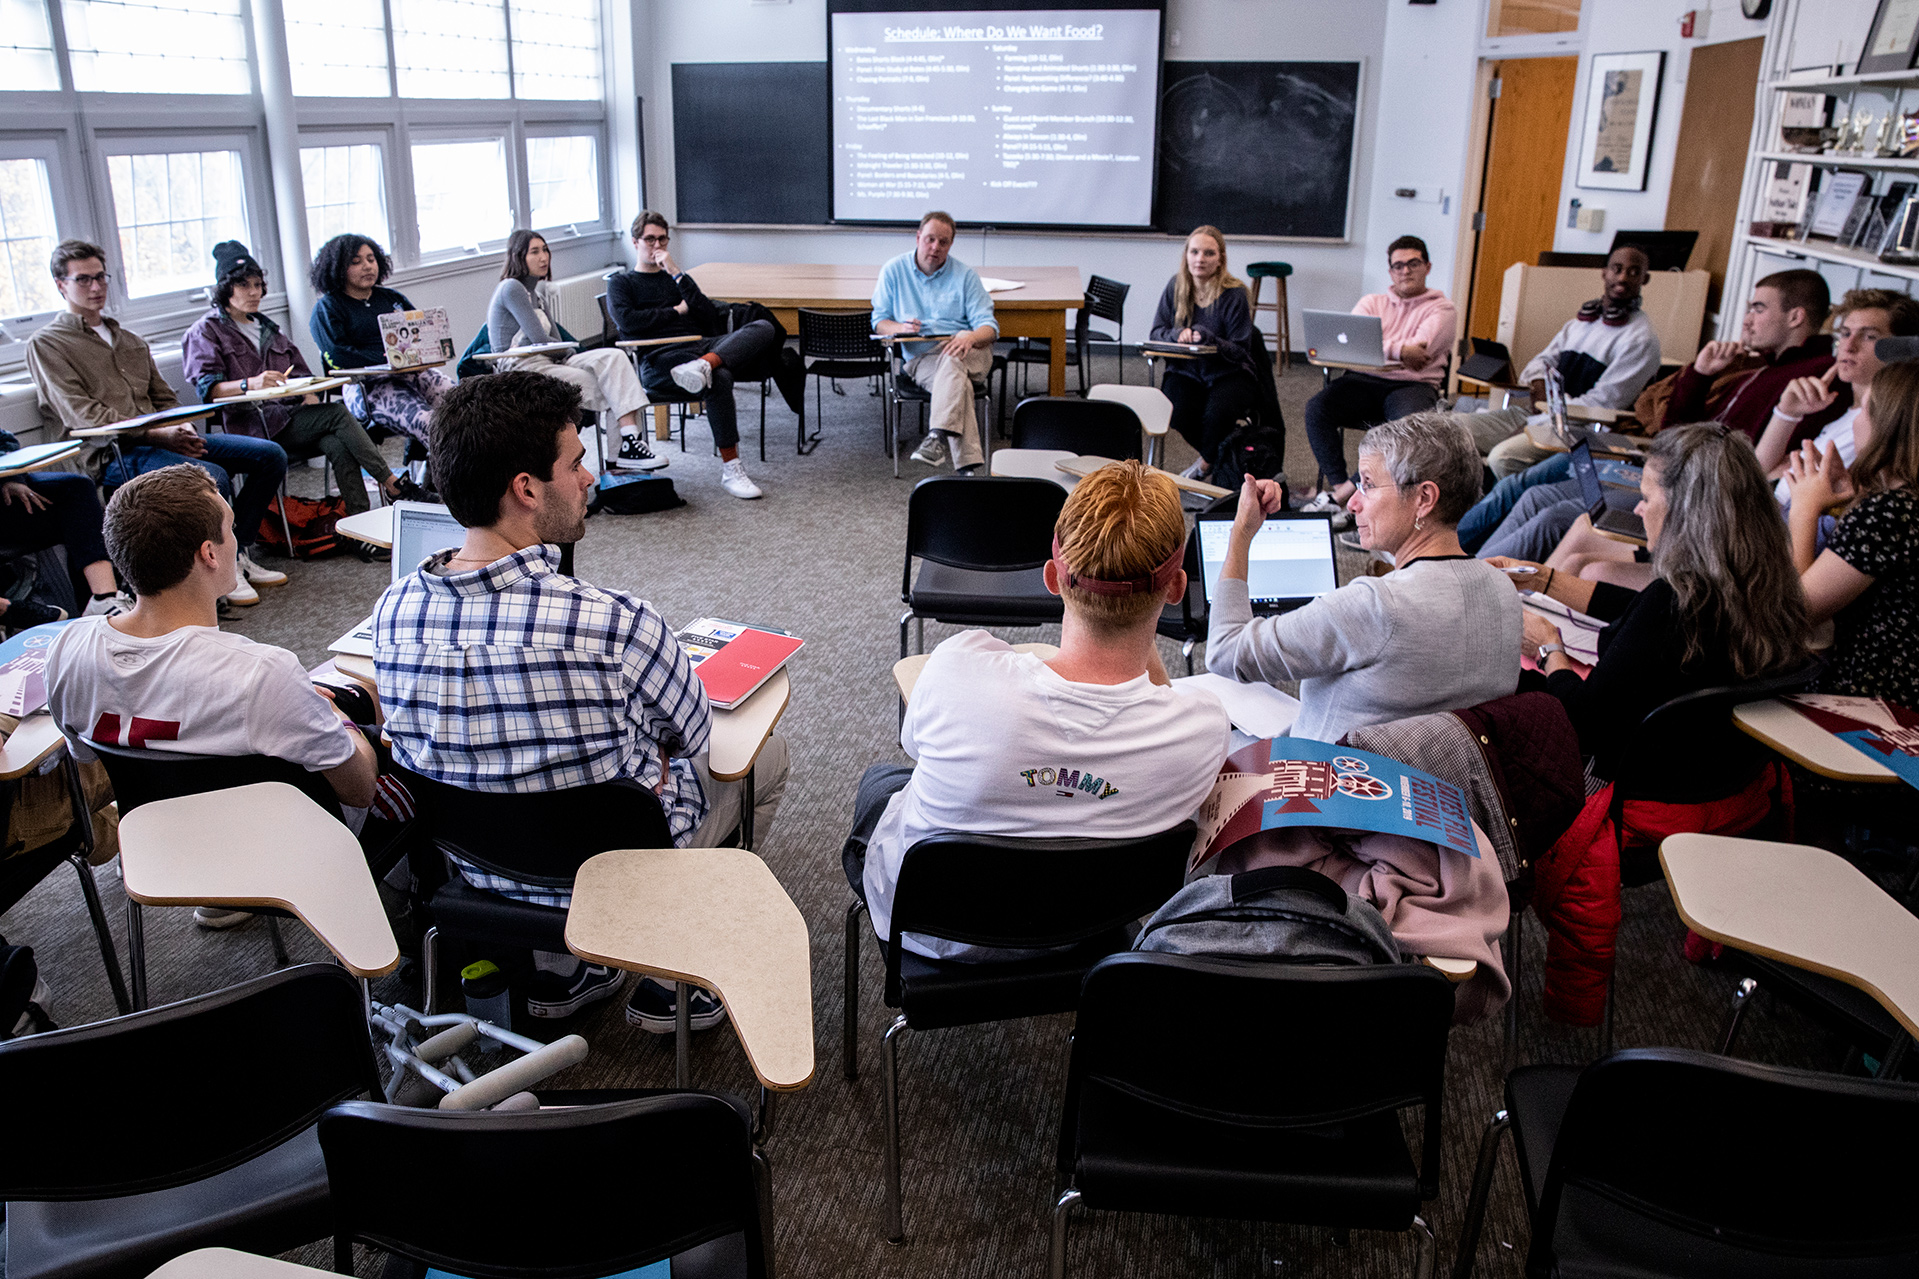 Film and screen studies professor Jon Cavallero and students in his 'Film Festival Studies' course meet with Dining, Conferences, and Campus events staff (center right) for festioval planning in October 2019. (Phyllis Graber Jensen/Bates College)